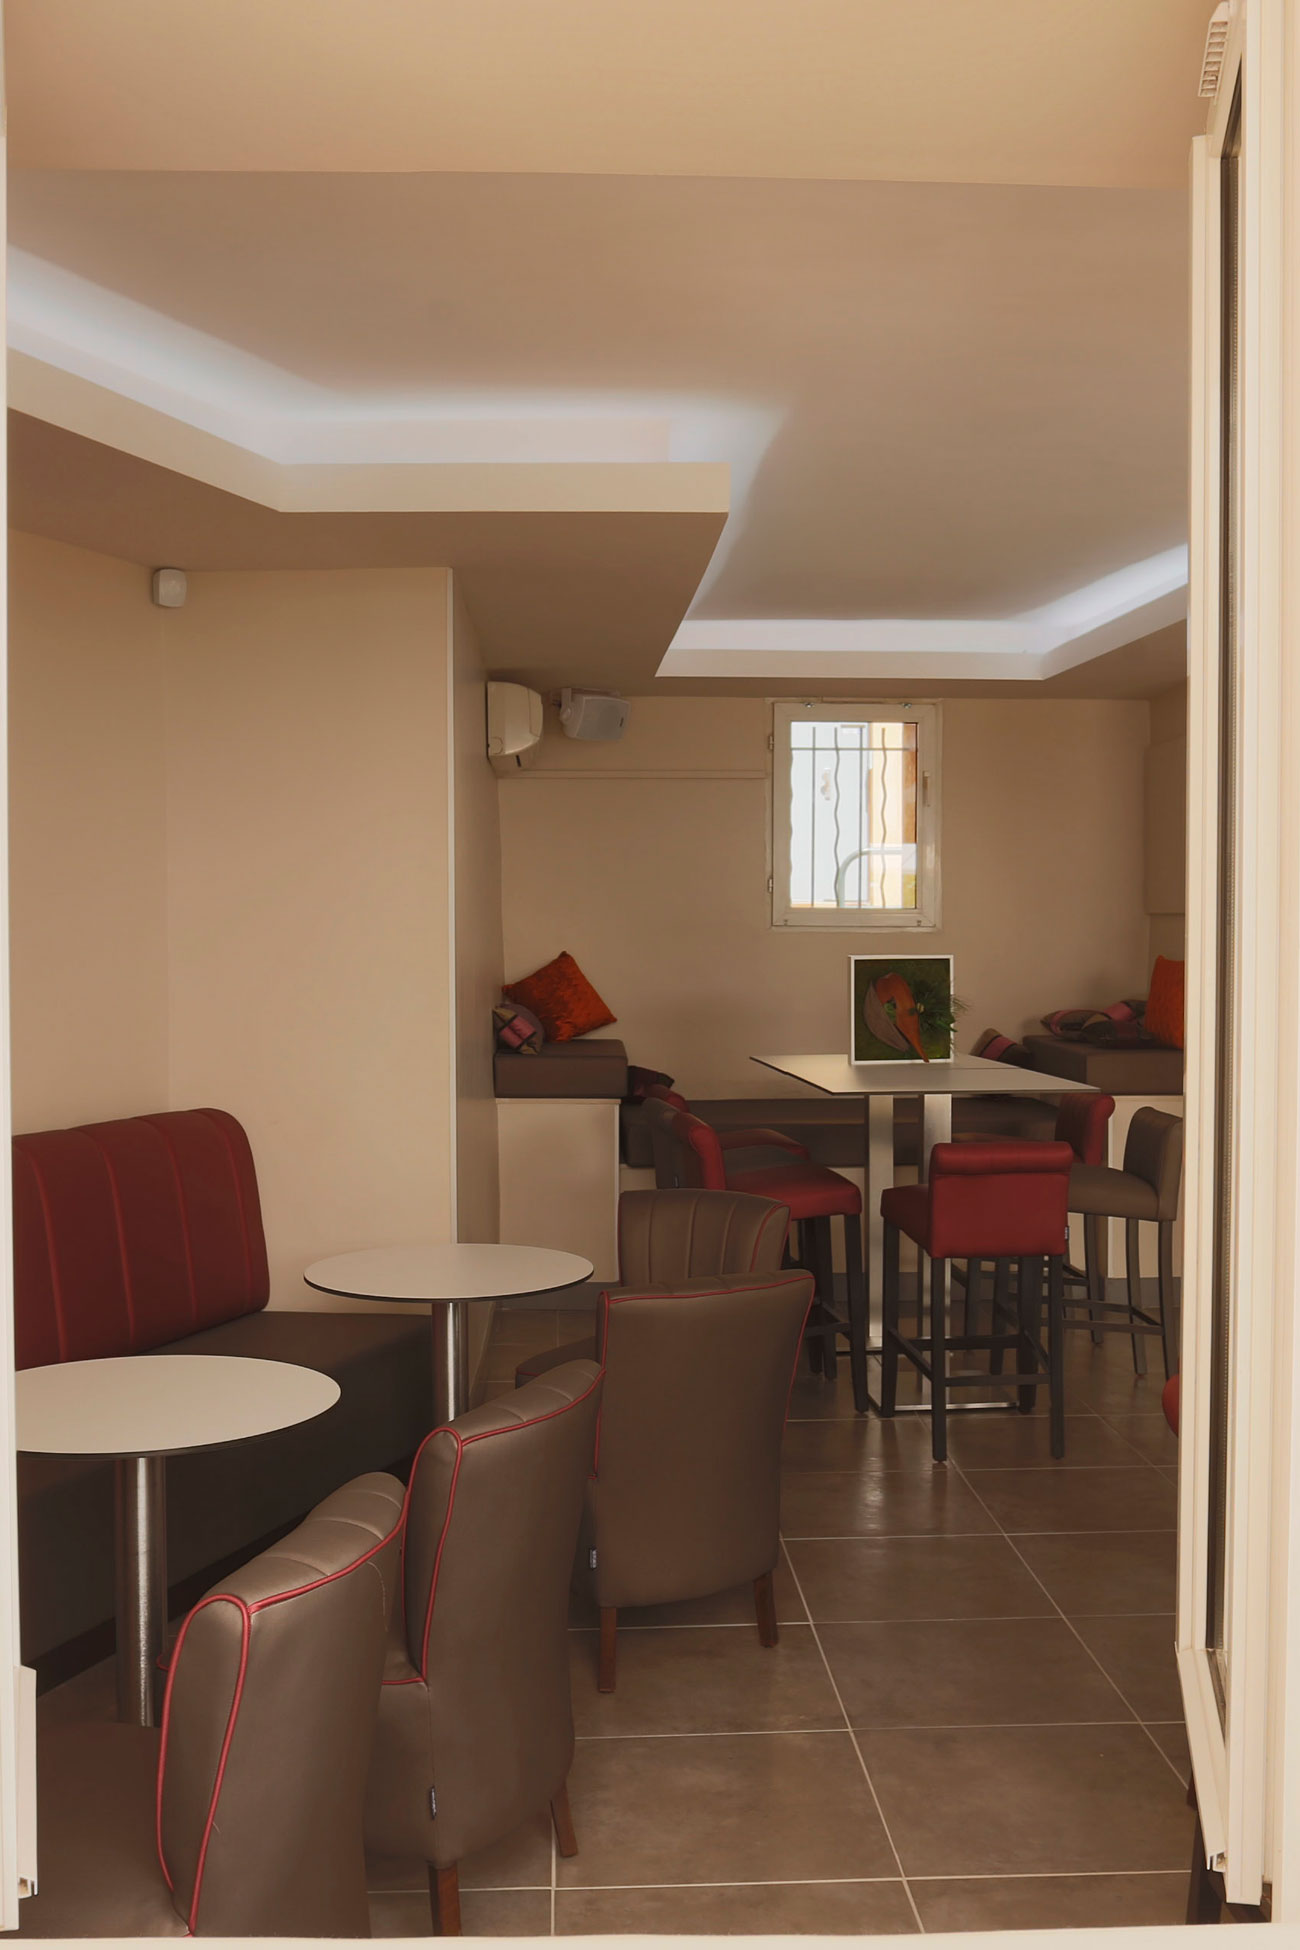 o-3-lounges-silleria-verges-furniture